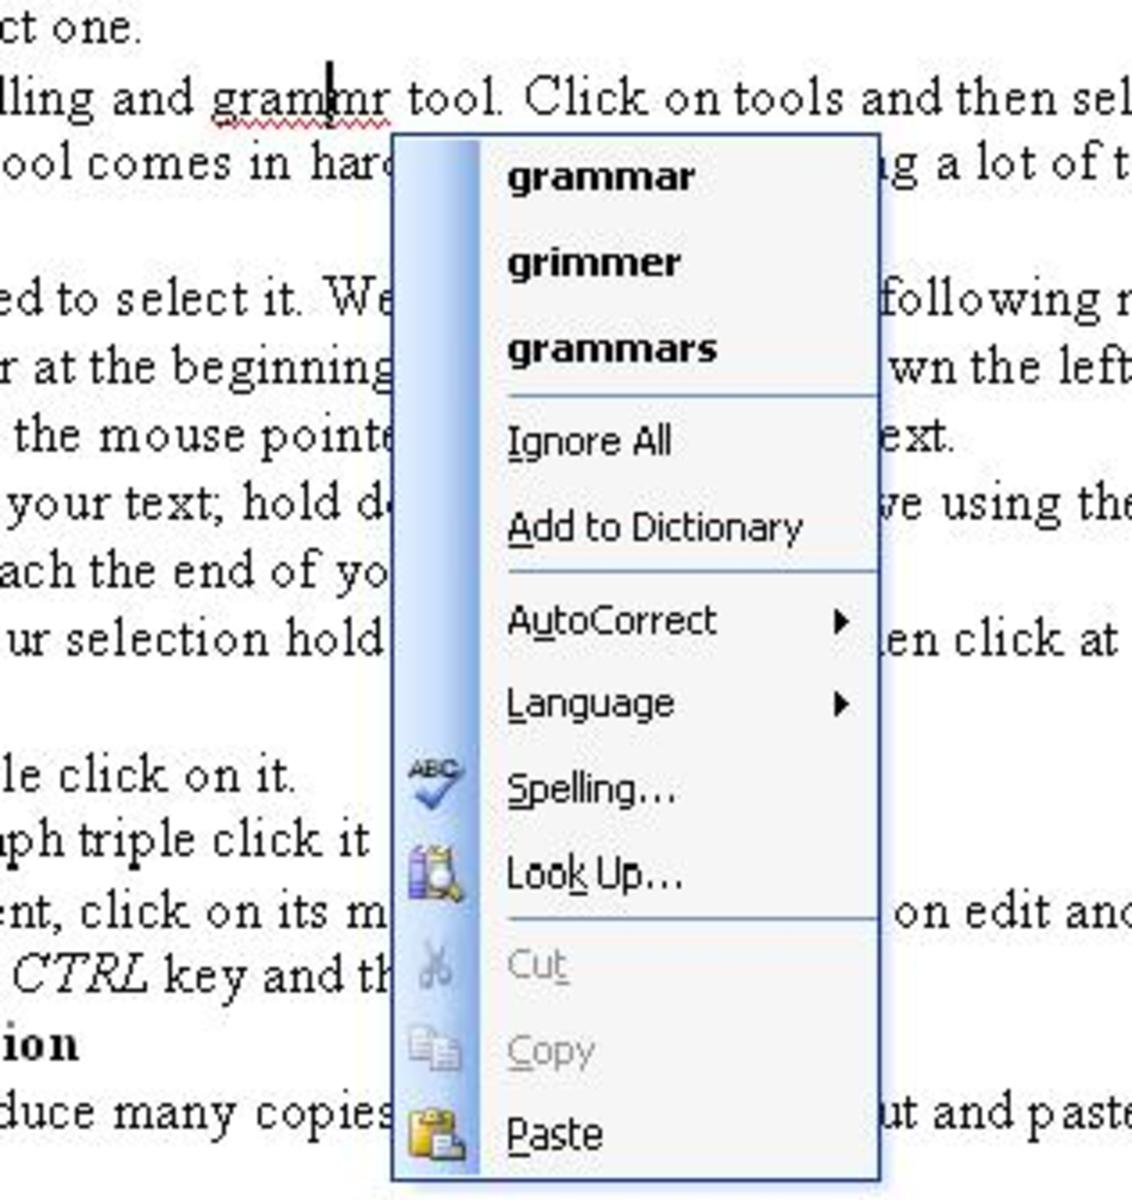 Spelling and grammar check by right clicking